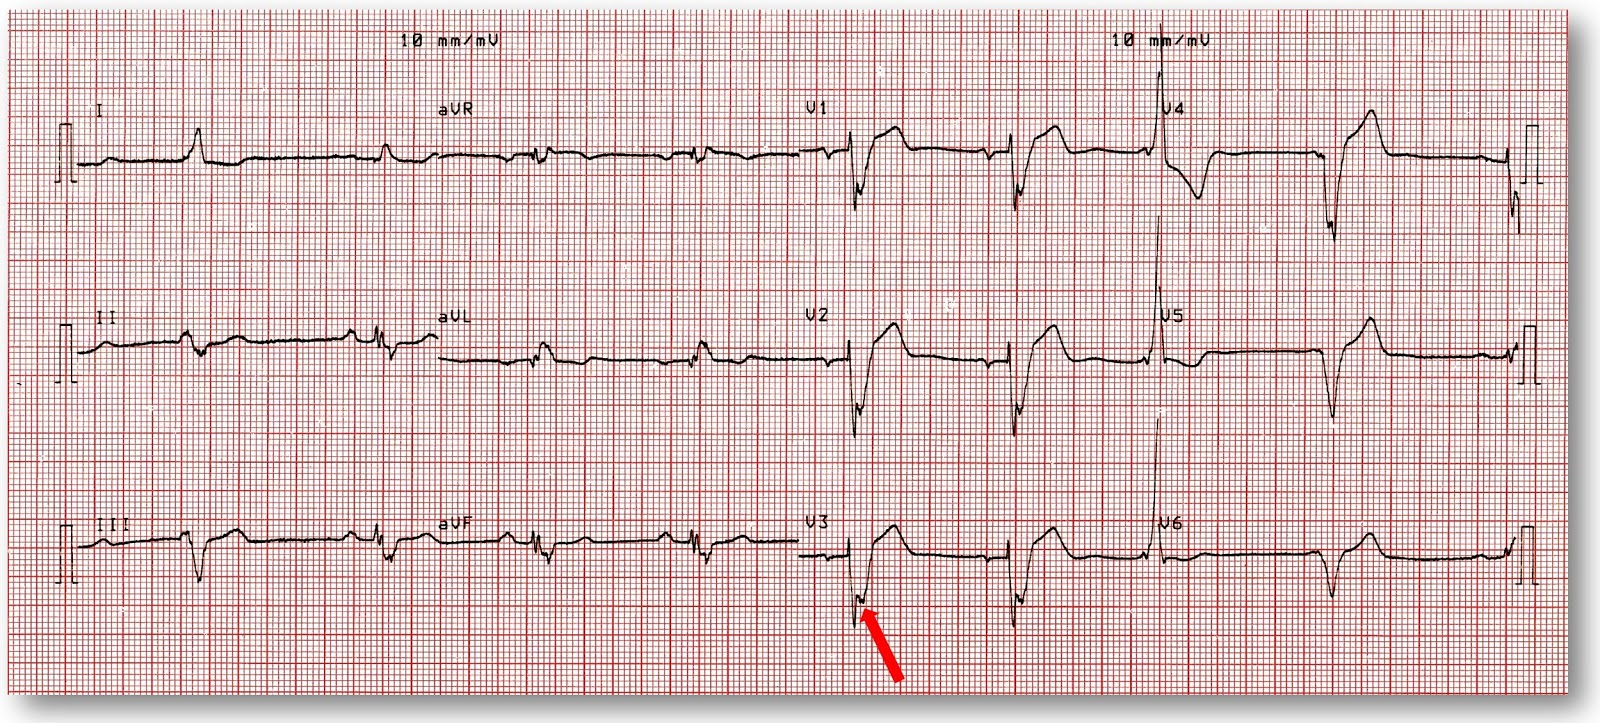 Andrew R Houghton Cabreras Sign And The Diagnosis Of Old Mi In Lbbb